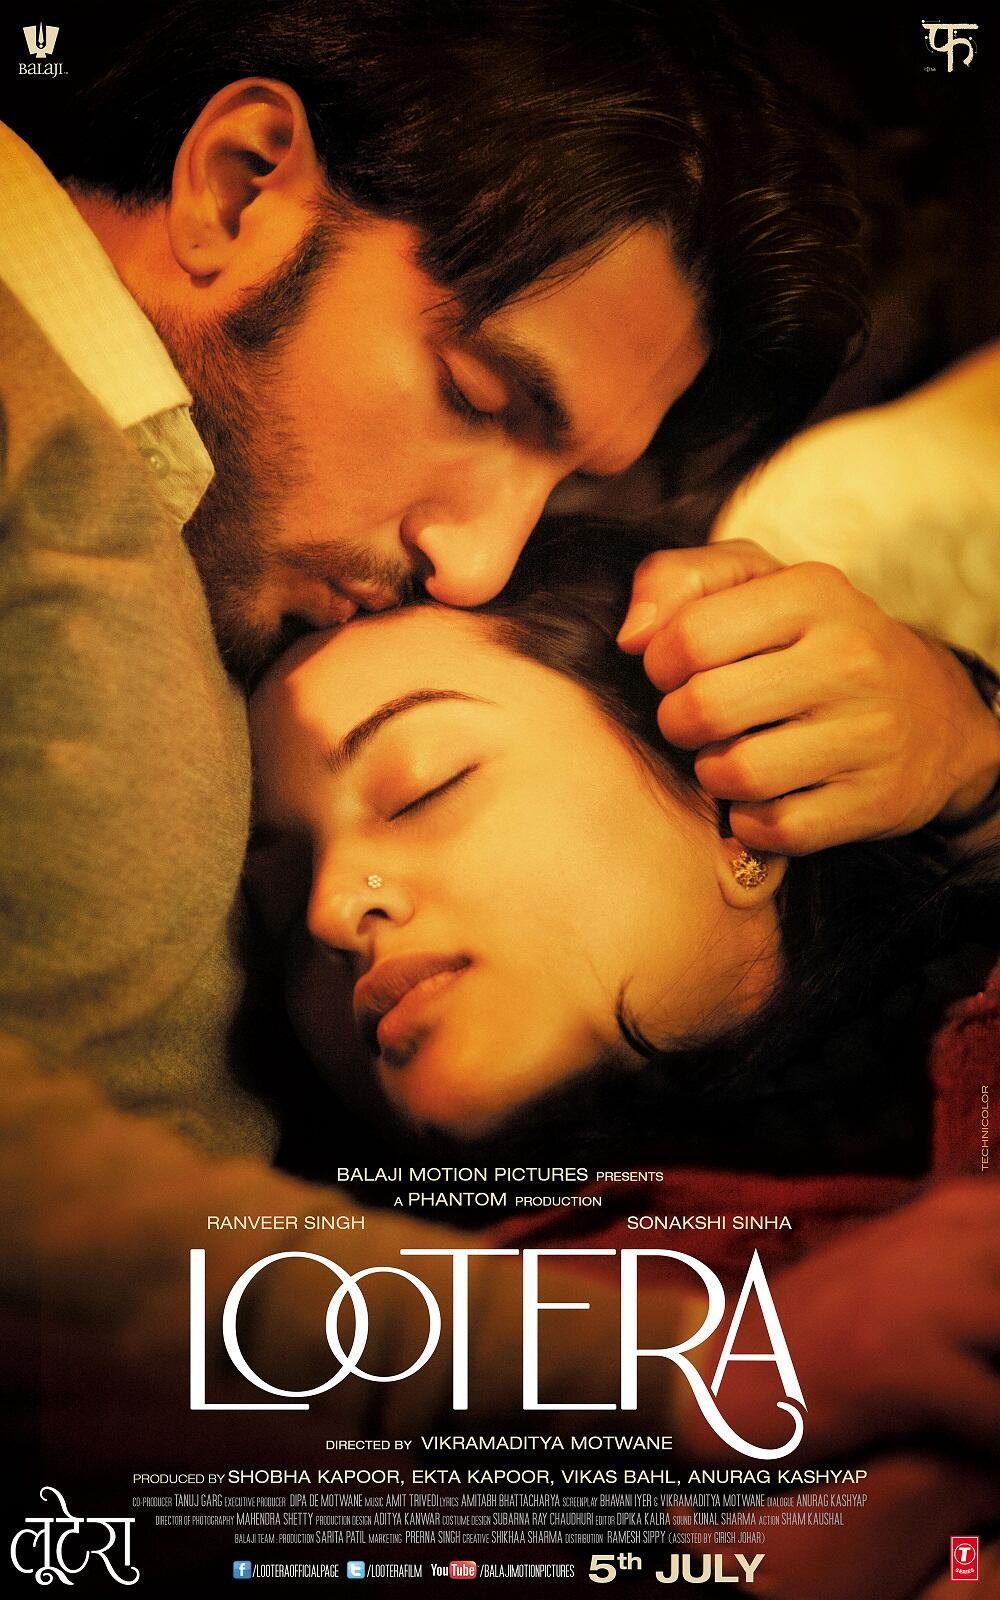 Lootera (2013) Hindi Full Movie Watch Online *BluRay*